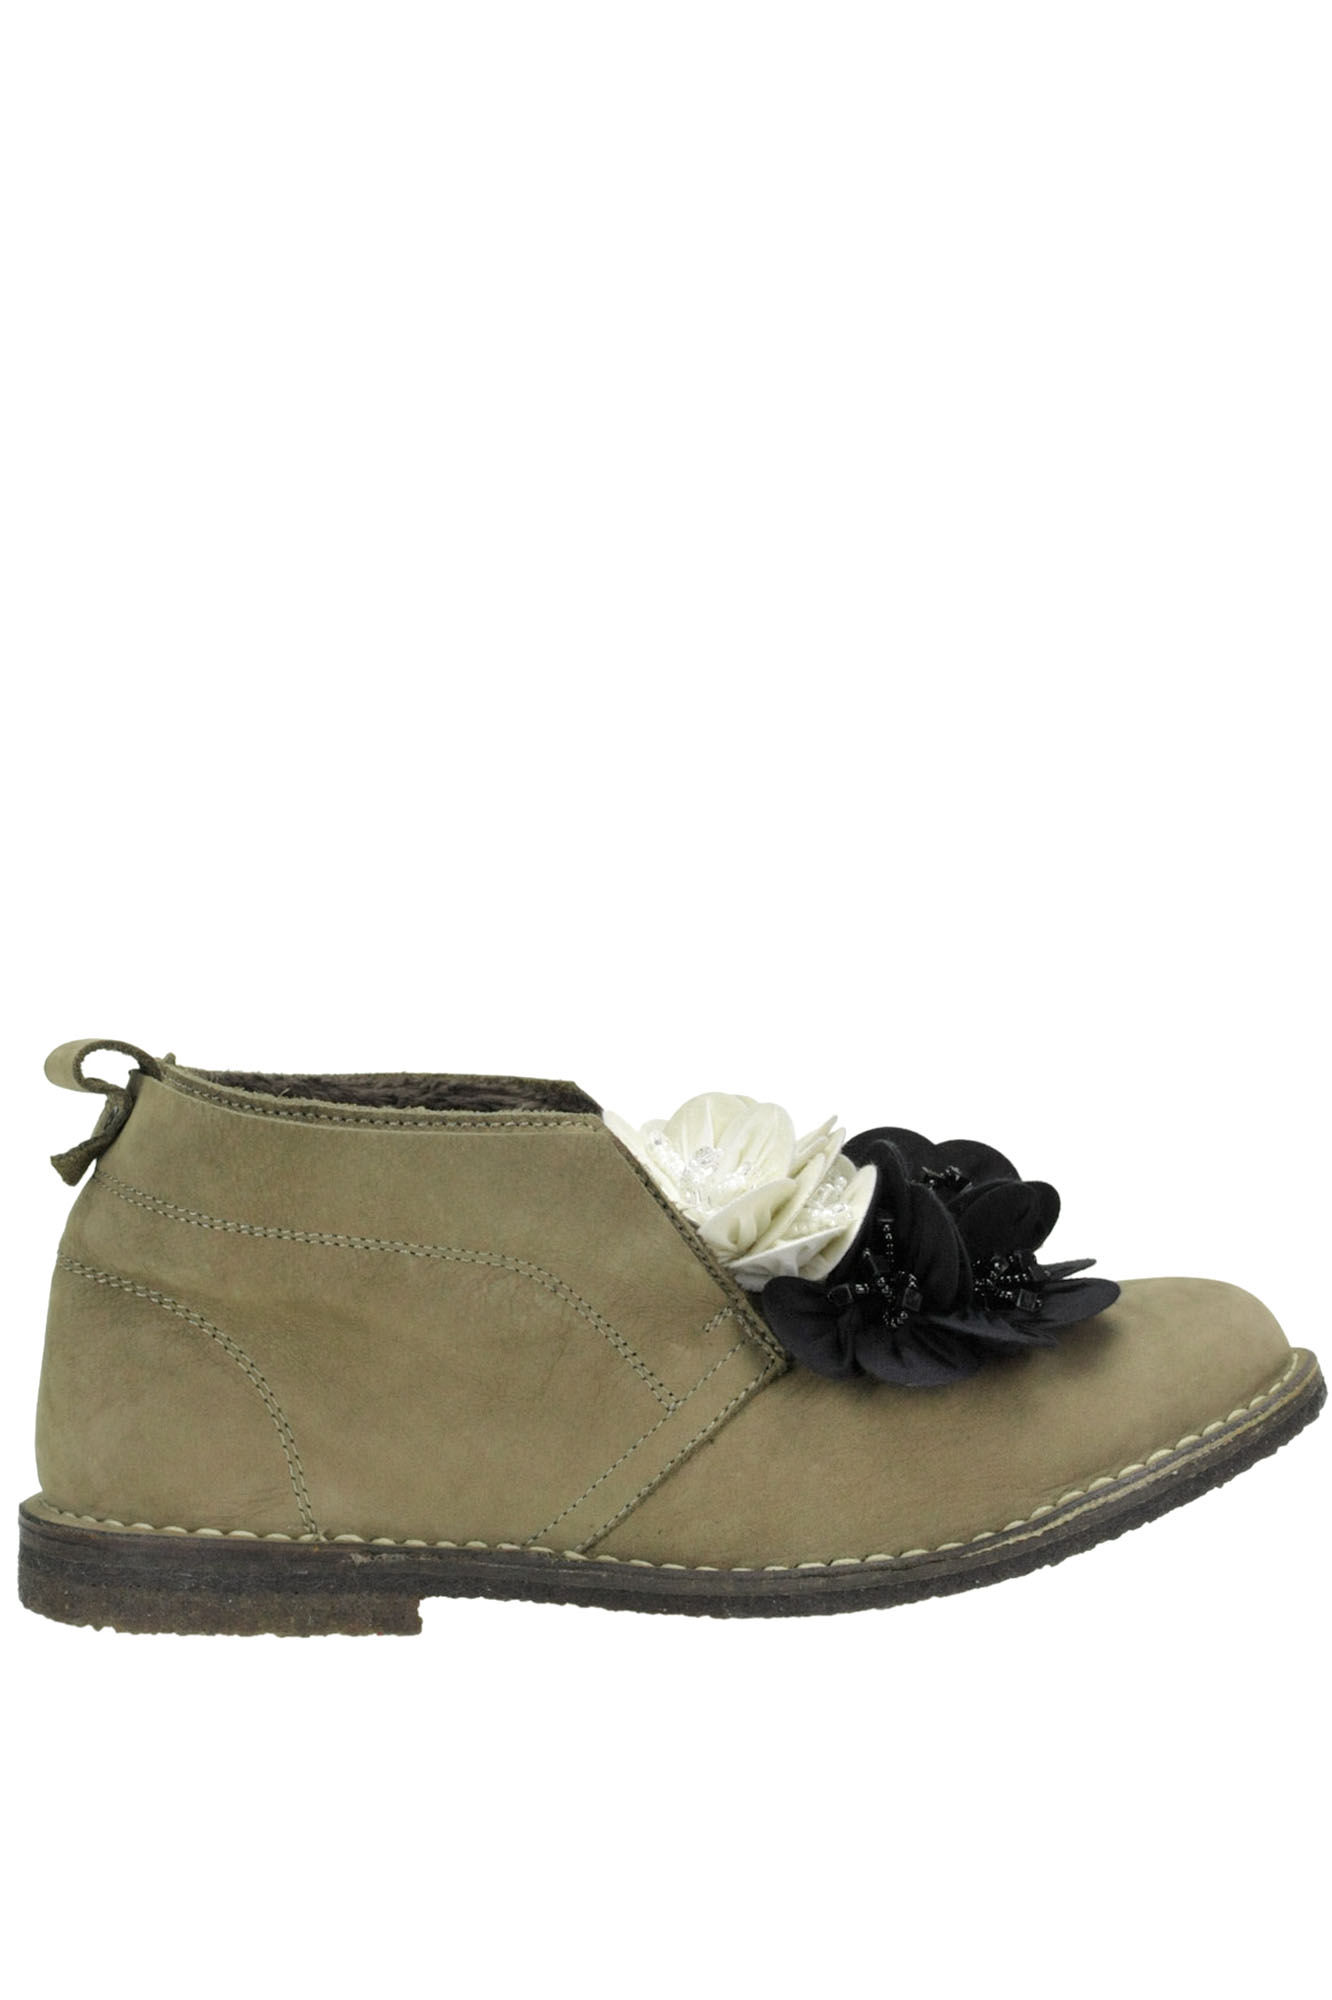 POKEMAOKE Flower Applications Suede Shoes in Kaki